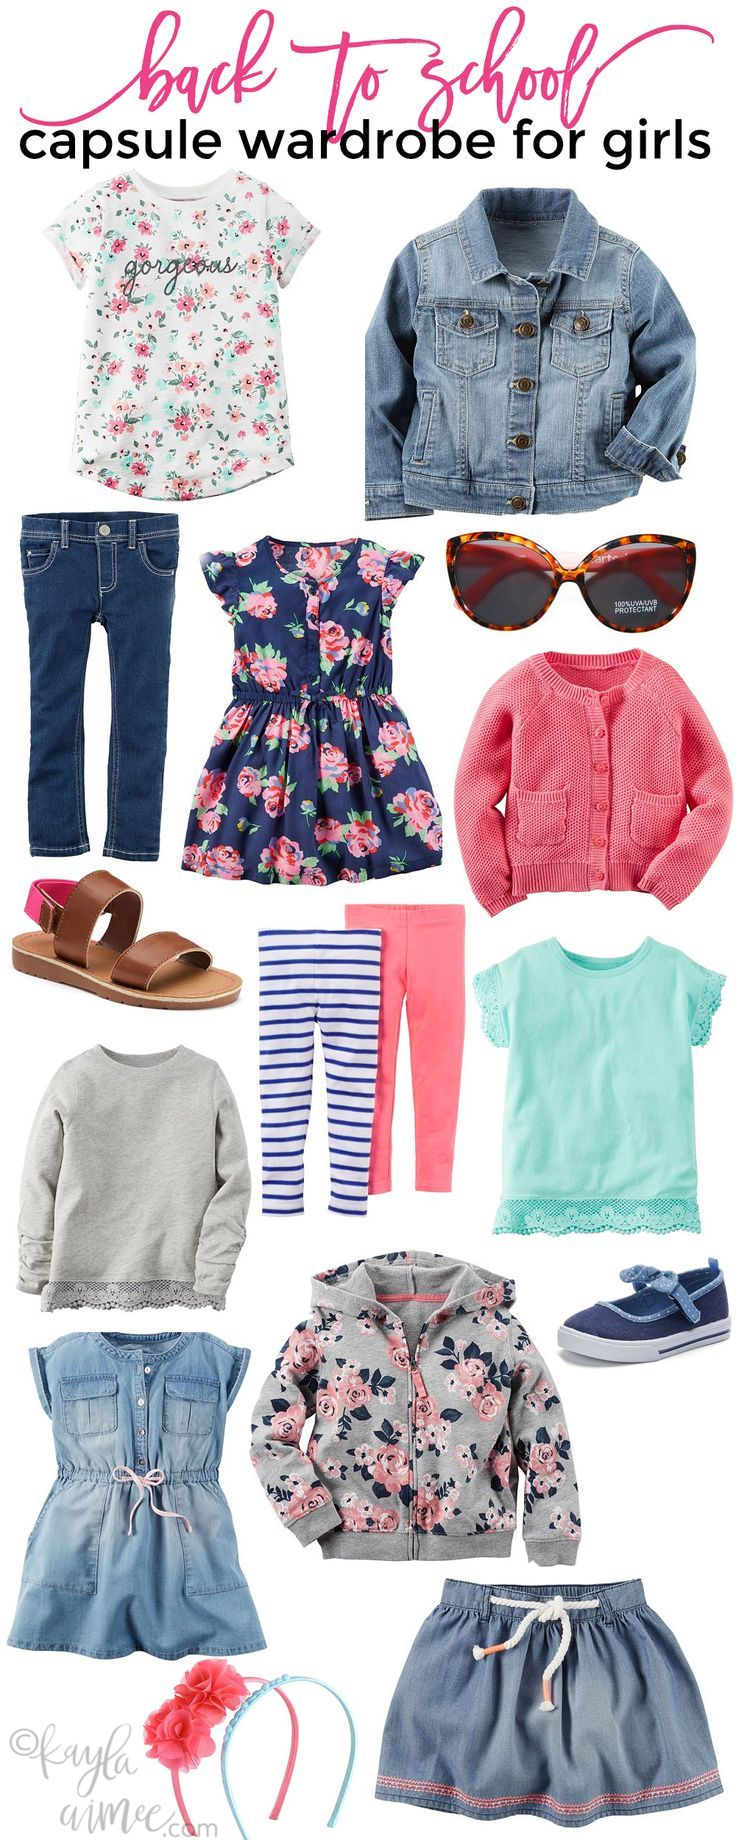 Back To School Capsule Wardrobe For Girls is part of Clothes Style For Girls - This post is sponsored by Kohl's  I was paid for this post and received the included Carter's clothing as compensation  My five year old starts kindergarten next week so don't mind me, I'm just over